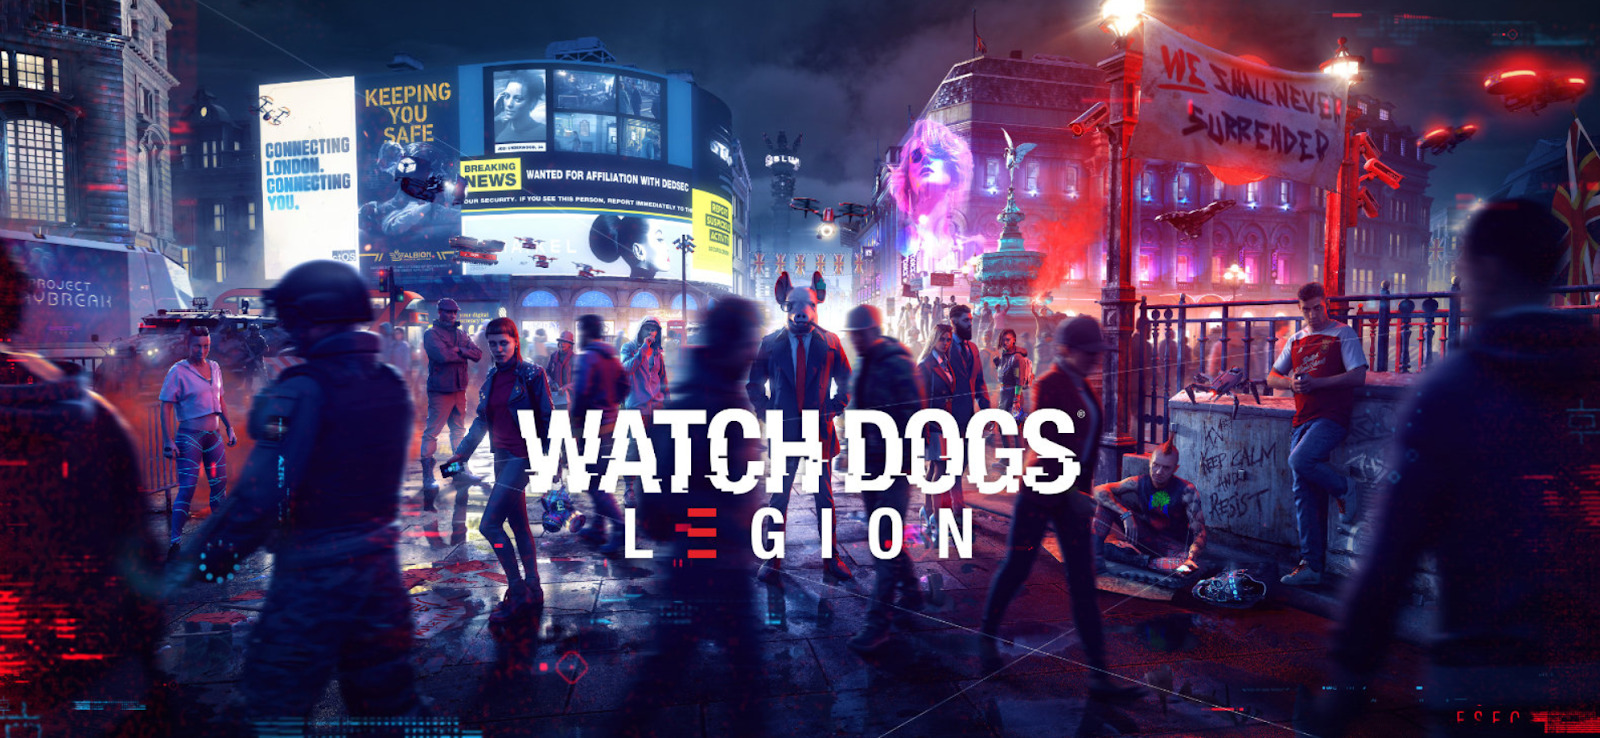 watch dogs legion watch dogs legion release watch dogs legion ps4 watch dogs legion release date watch dogs legion test watch dogs legion key watch dog legion watch dogs legion ps5 watch dogs legion steam watch dogs legion systemanforderungen watch dogs legion multiplayer watch dogs legion pc buy game code legion online mode legion watch dogs watch dogs legion review watch dogs legion xbox one watch dogs legion map watch dogs legion season pass watch dogs legion trophäen watch dogs legion collector's edition watch dogs legion ultimate edition watch dogs legion wallpaper watch dogs legion coop watch dogs legion gameplay watch dogs legion tipps watch dogs legion xbox watch dogs legion kaufen watch dogs legion cdkey watch dogs legion system requirements wann kommt watch dogs legion raus watch dogs legion gold edition watch dogs legion release datum watch dogs legion trailer watch dogs legion vip status watch dogs legion amazon watch dogs legion bewertung watch dogs legion erscheinungsdatum watch dogs legion mmoga watch dogs legion online watch dogs legion reddit ps4 watch dogs legion release watch dogs legion